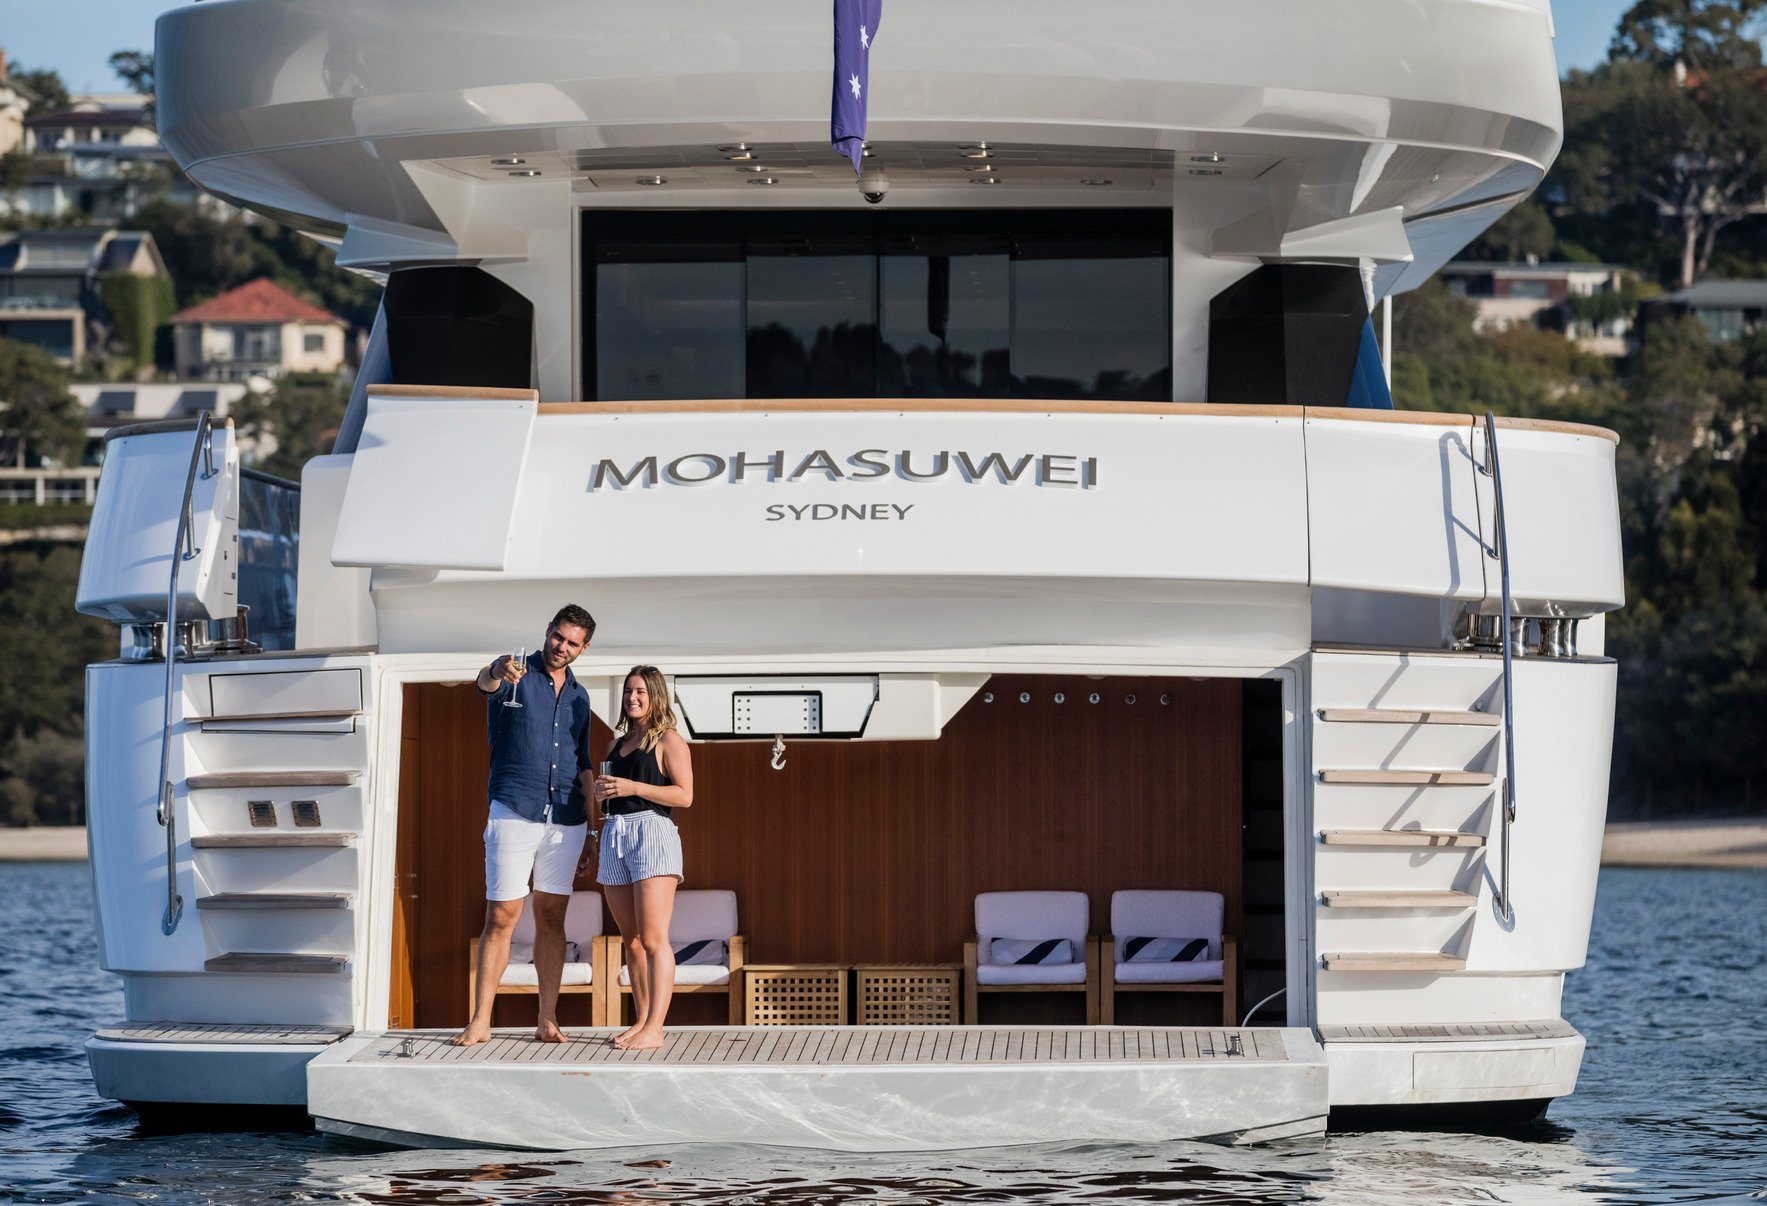 MOHASUWEI Beach Club